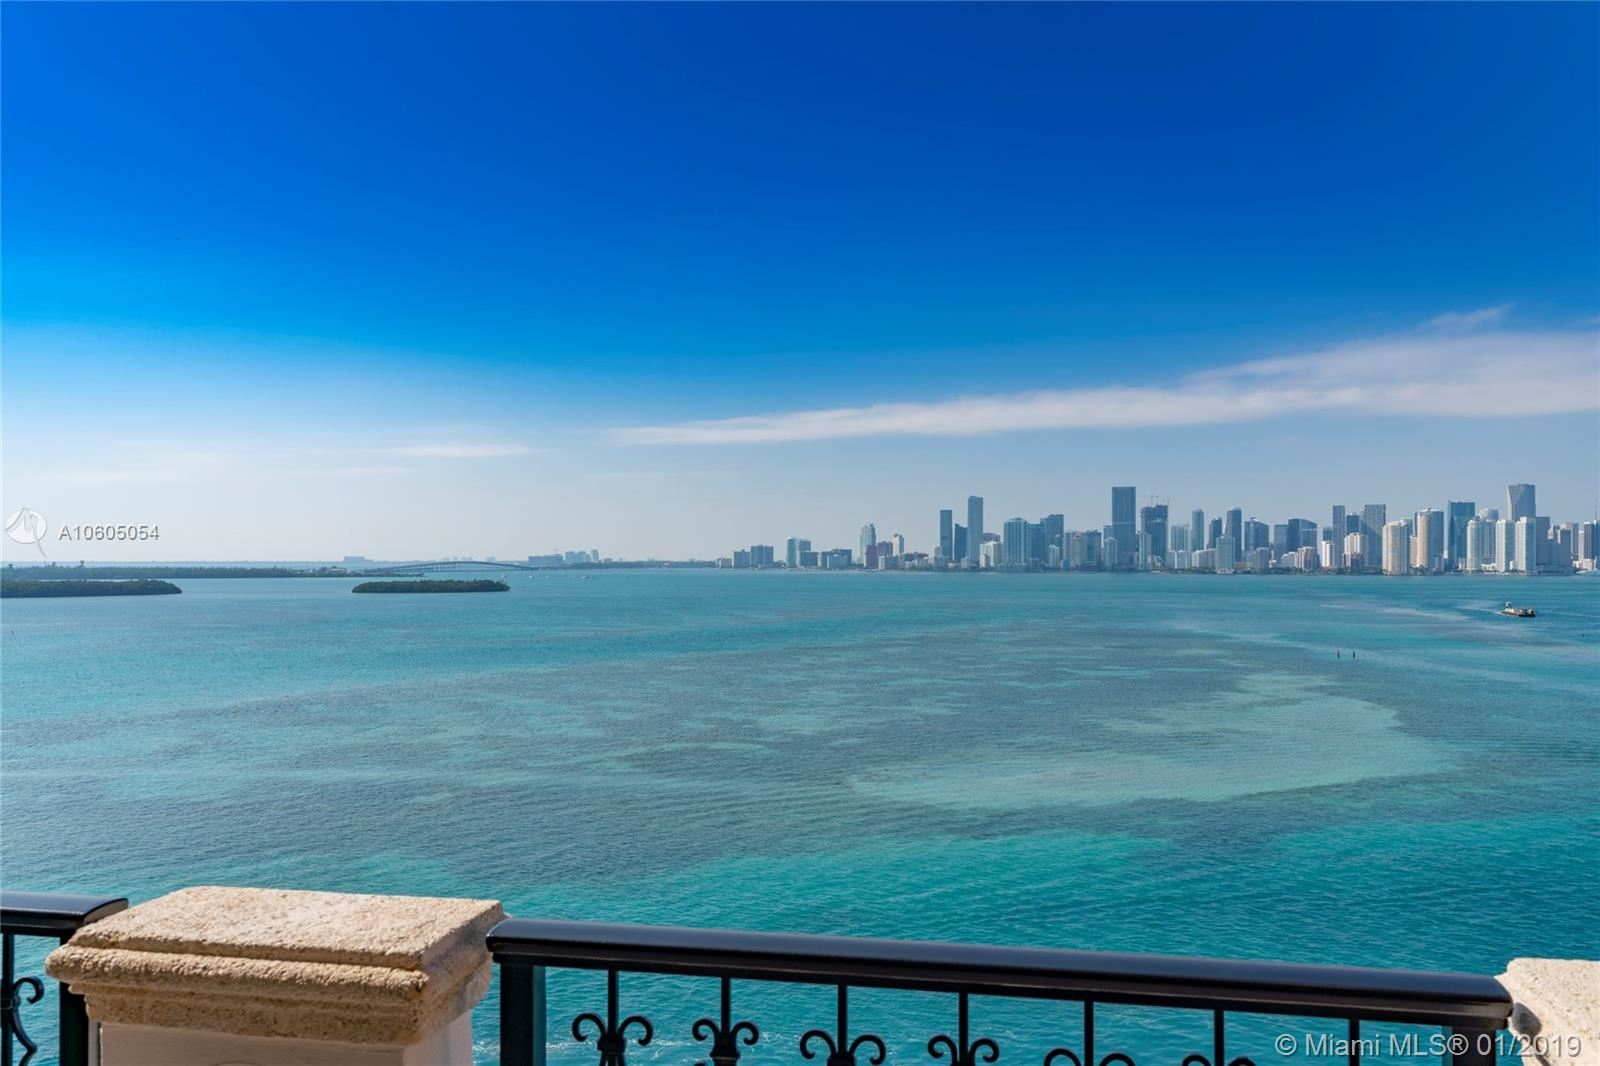 Photo 12 of Listing MLS a10605054 in 5203 Fisher Island Drive #5203 Miami FL 33109